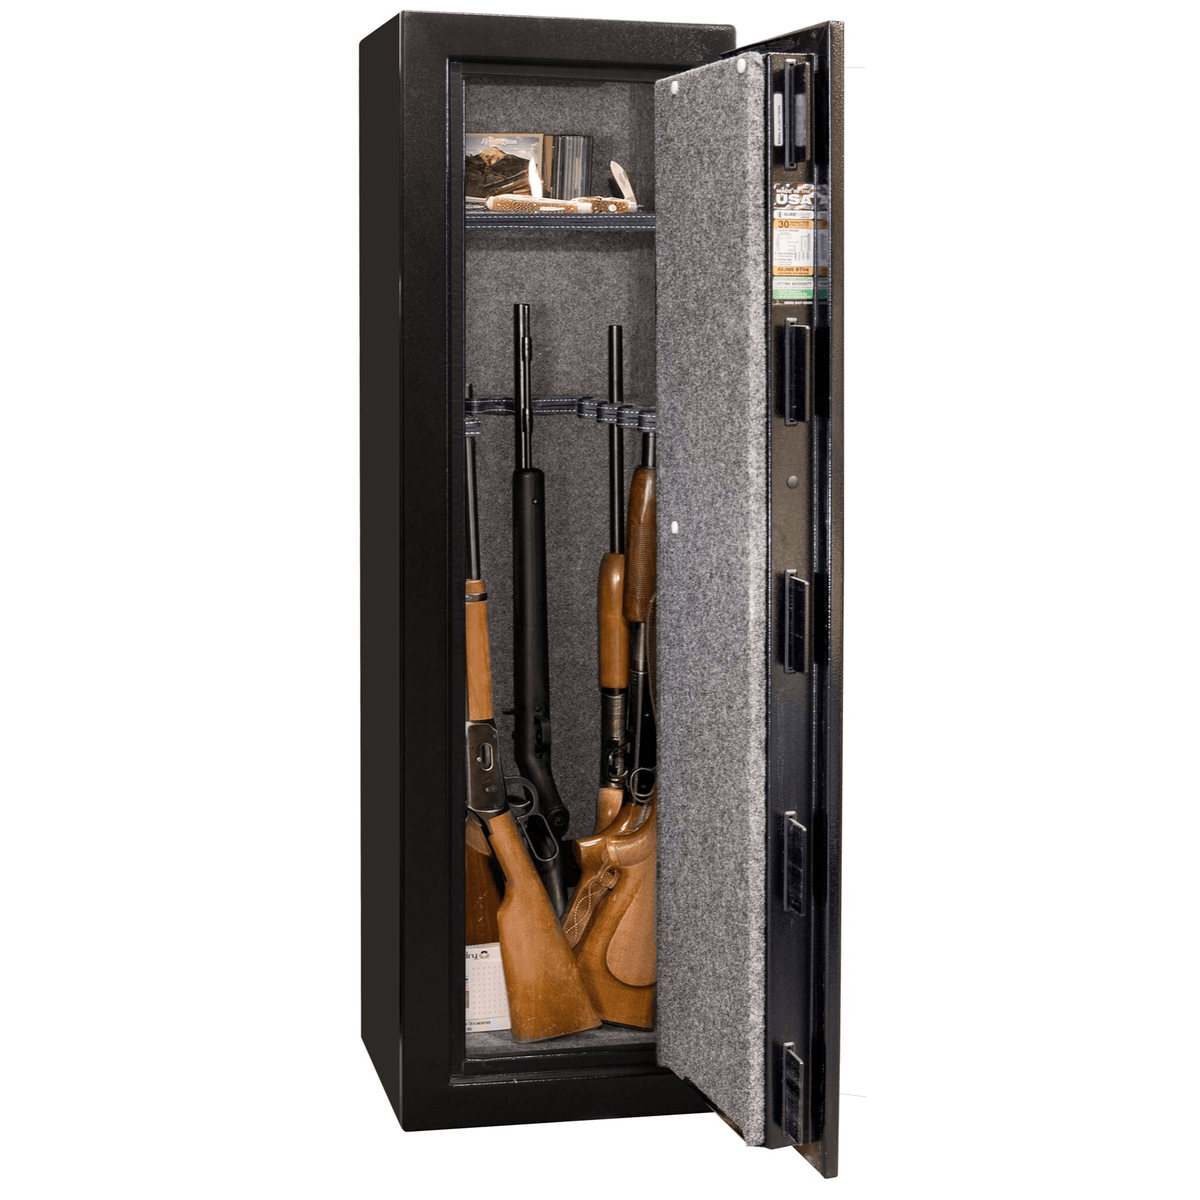 "Centurion Series | Level 1 Security | 30 Minute Fire Protection | 18 | Dimensions: 59.5""(H) x 24.25""(W) x 22""(D) 